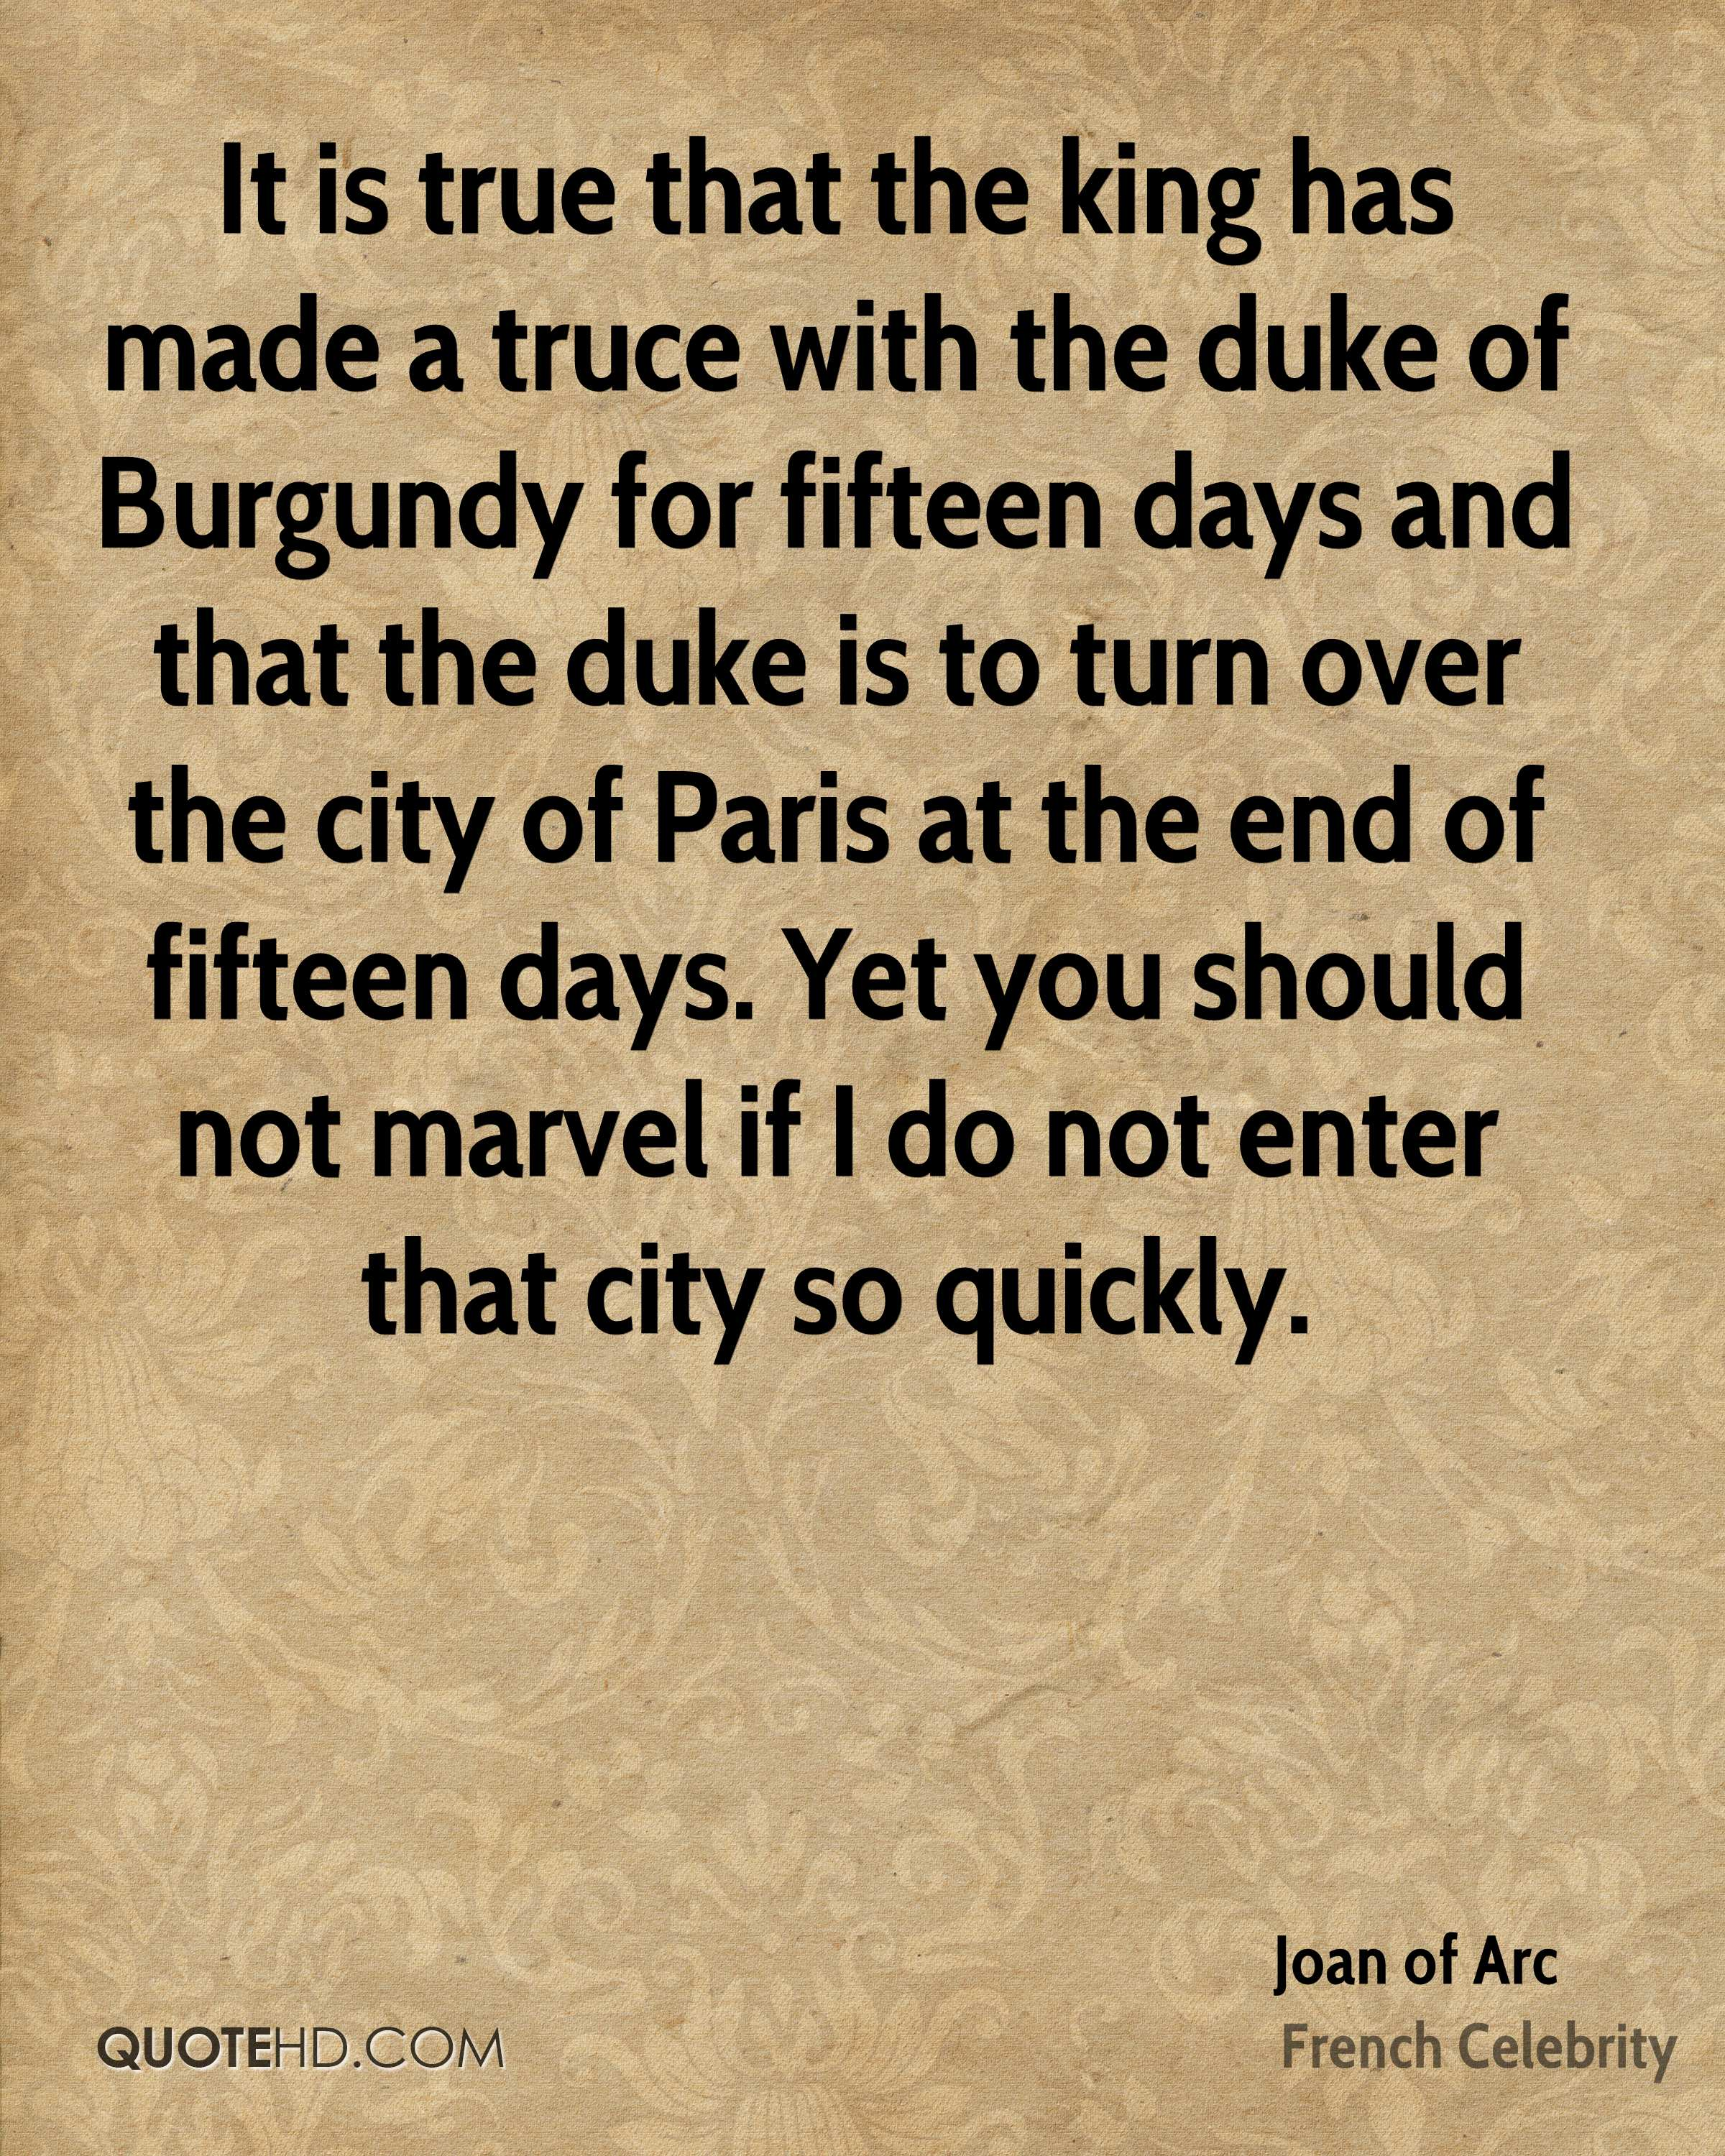 It is true that the king has made a truce with the duke of Burgundy for fifteen days and that the duke is to turn over the city of Paris at the end of fifteen days. Yet you should not marvel if I do not enter that city so quickly.